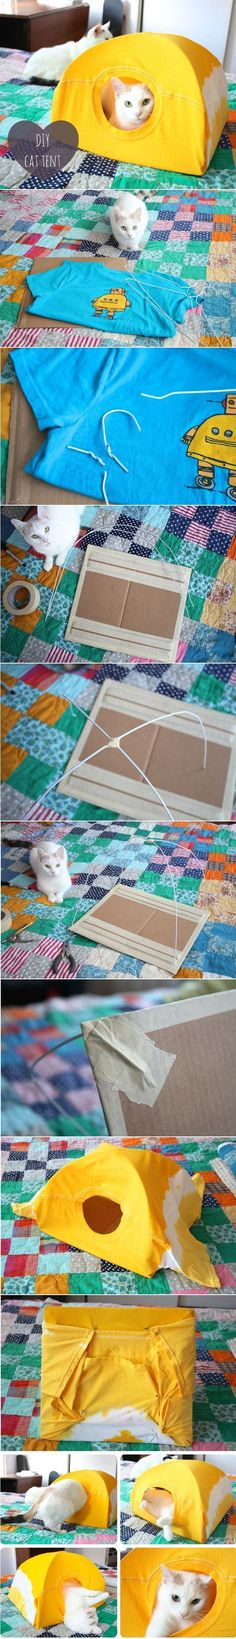 Find and save ideas about Homemade cat toys on Pinterest. | See more ideas about Diy cat toys, Kitten toys and Cat toys. #CatGatos